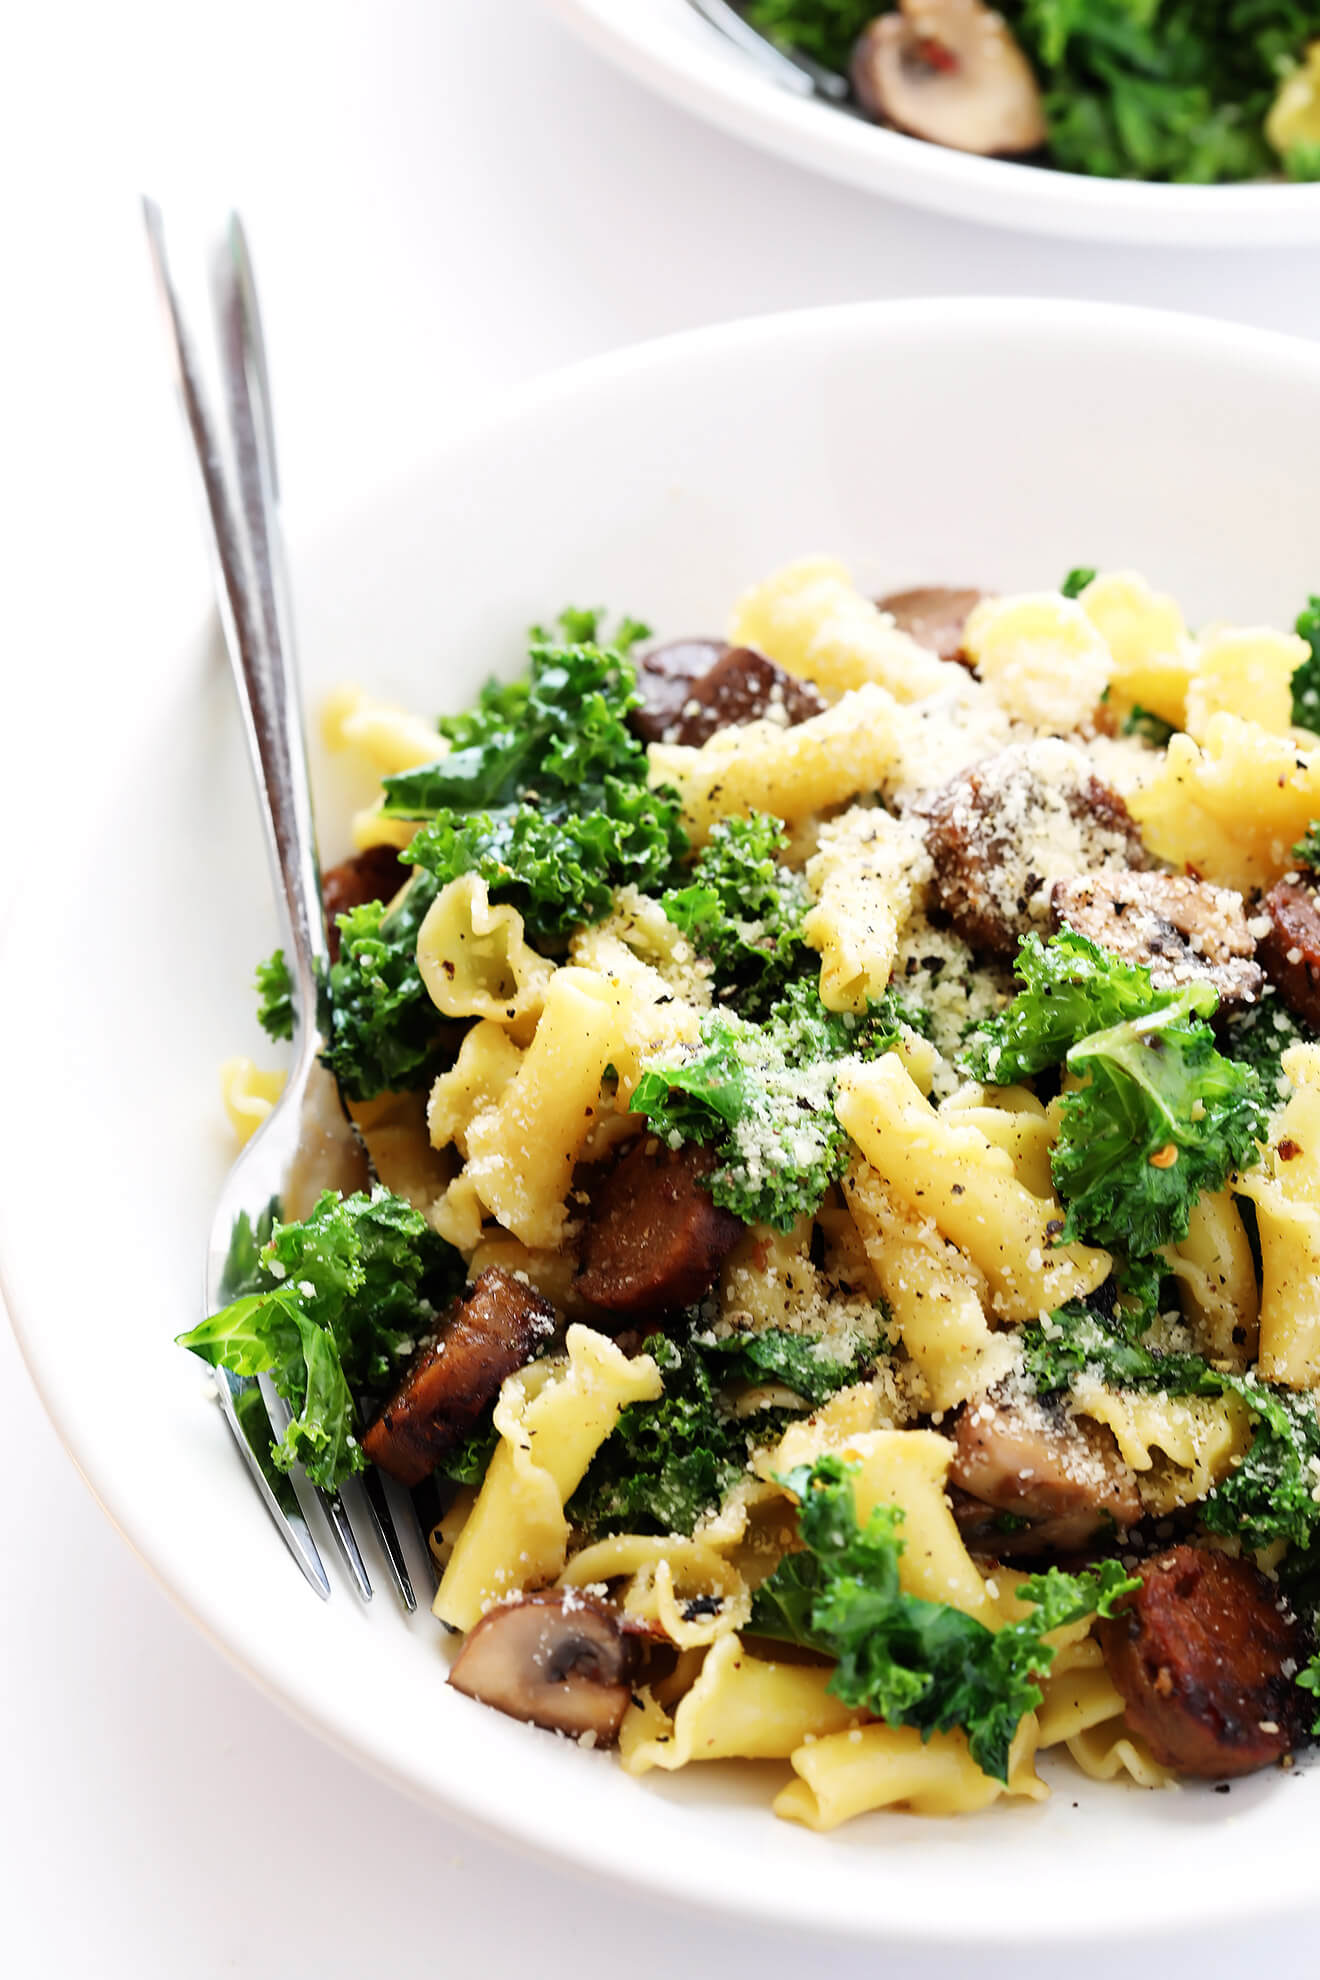 This Pasta with Italian Sausage, Mushrooms and Kale can actually be made vegetarian with one delicious surprise ingredient! | gimmesomeoven.com